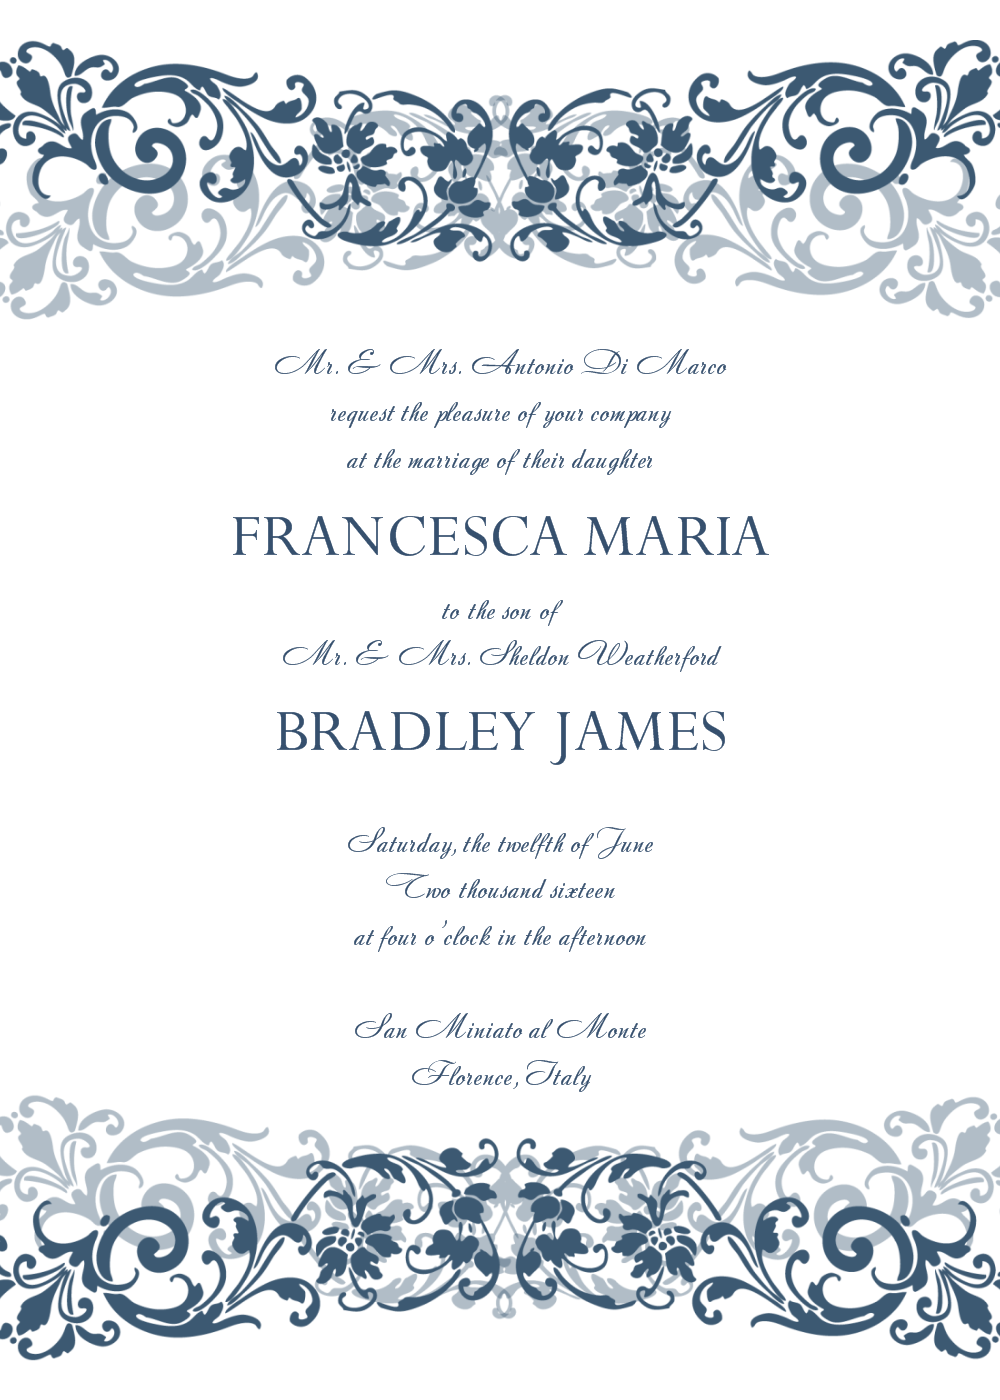 30+ free wedding invitations templates | free wedding invitation, Wedding invitations